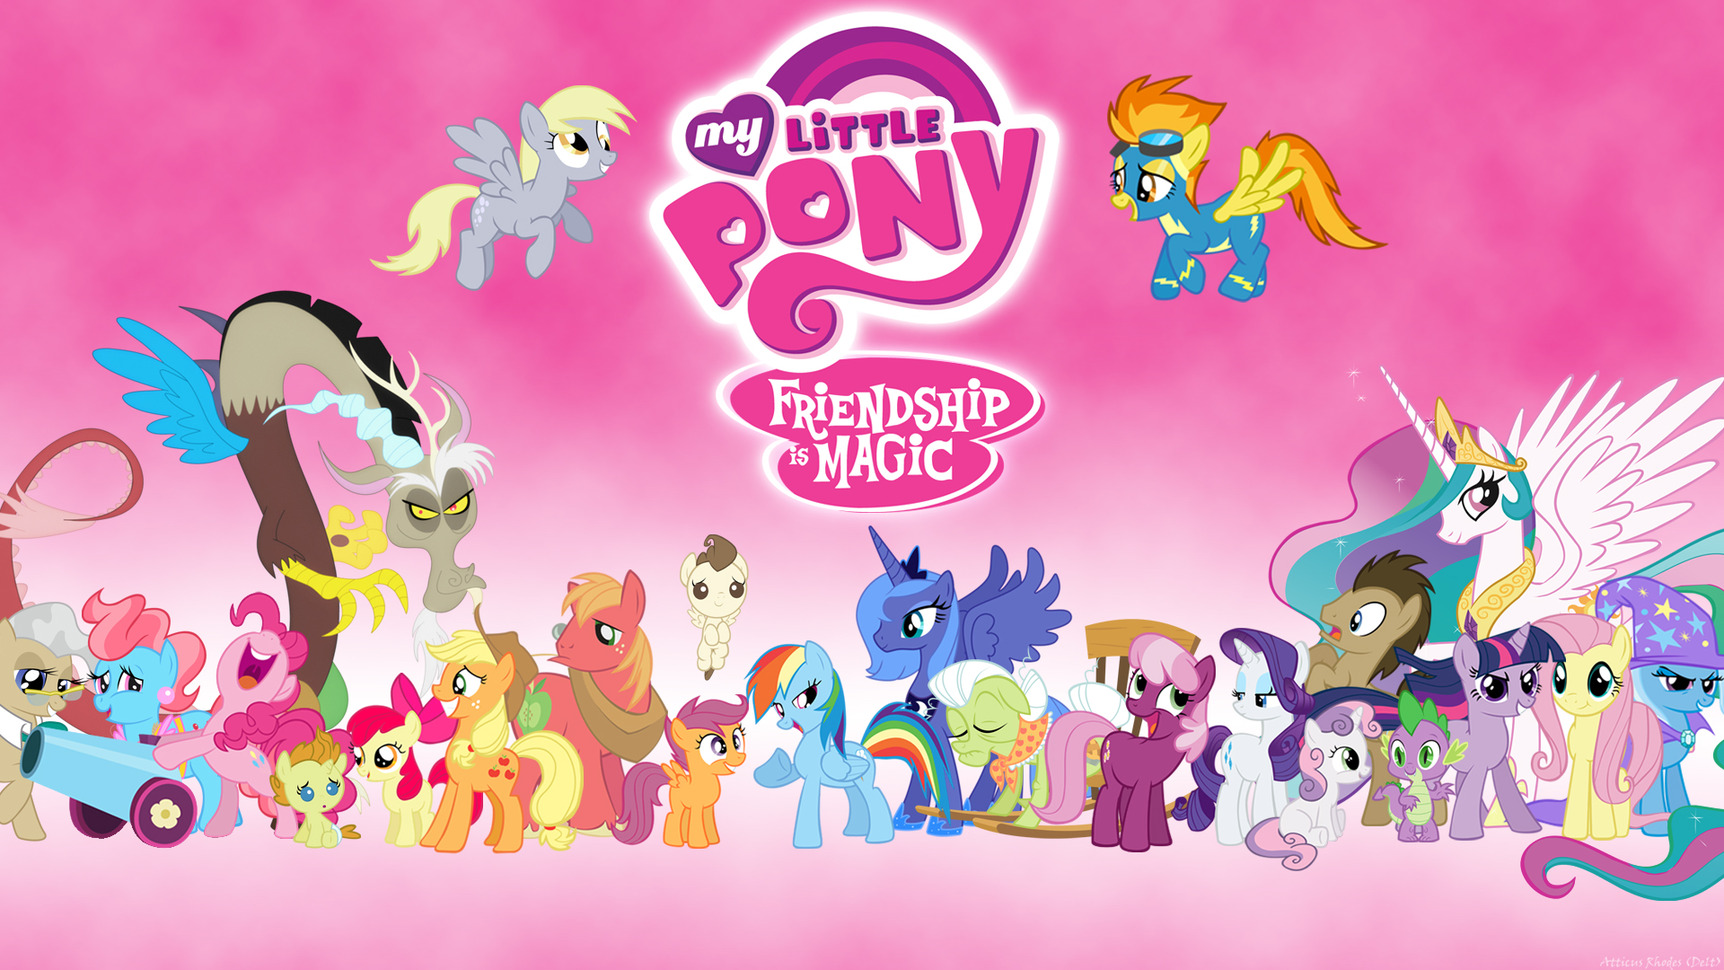 wallpapers my little pony - Imágenes - Taringa! Friends With Benefits Movie Meme